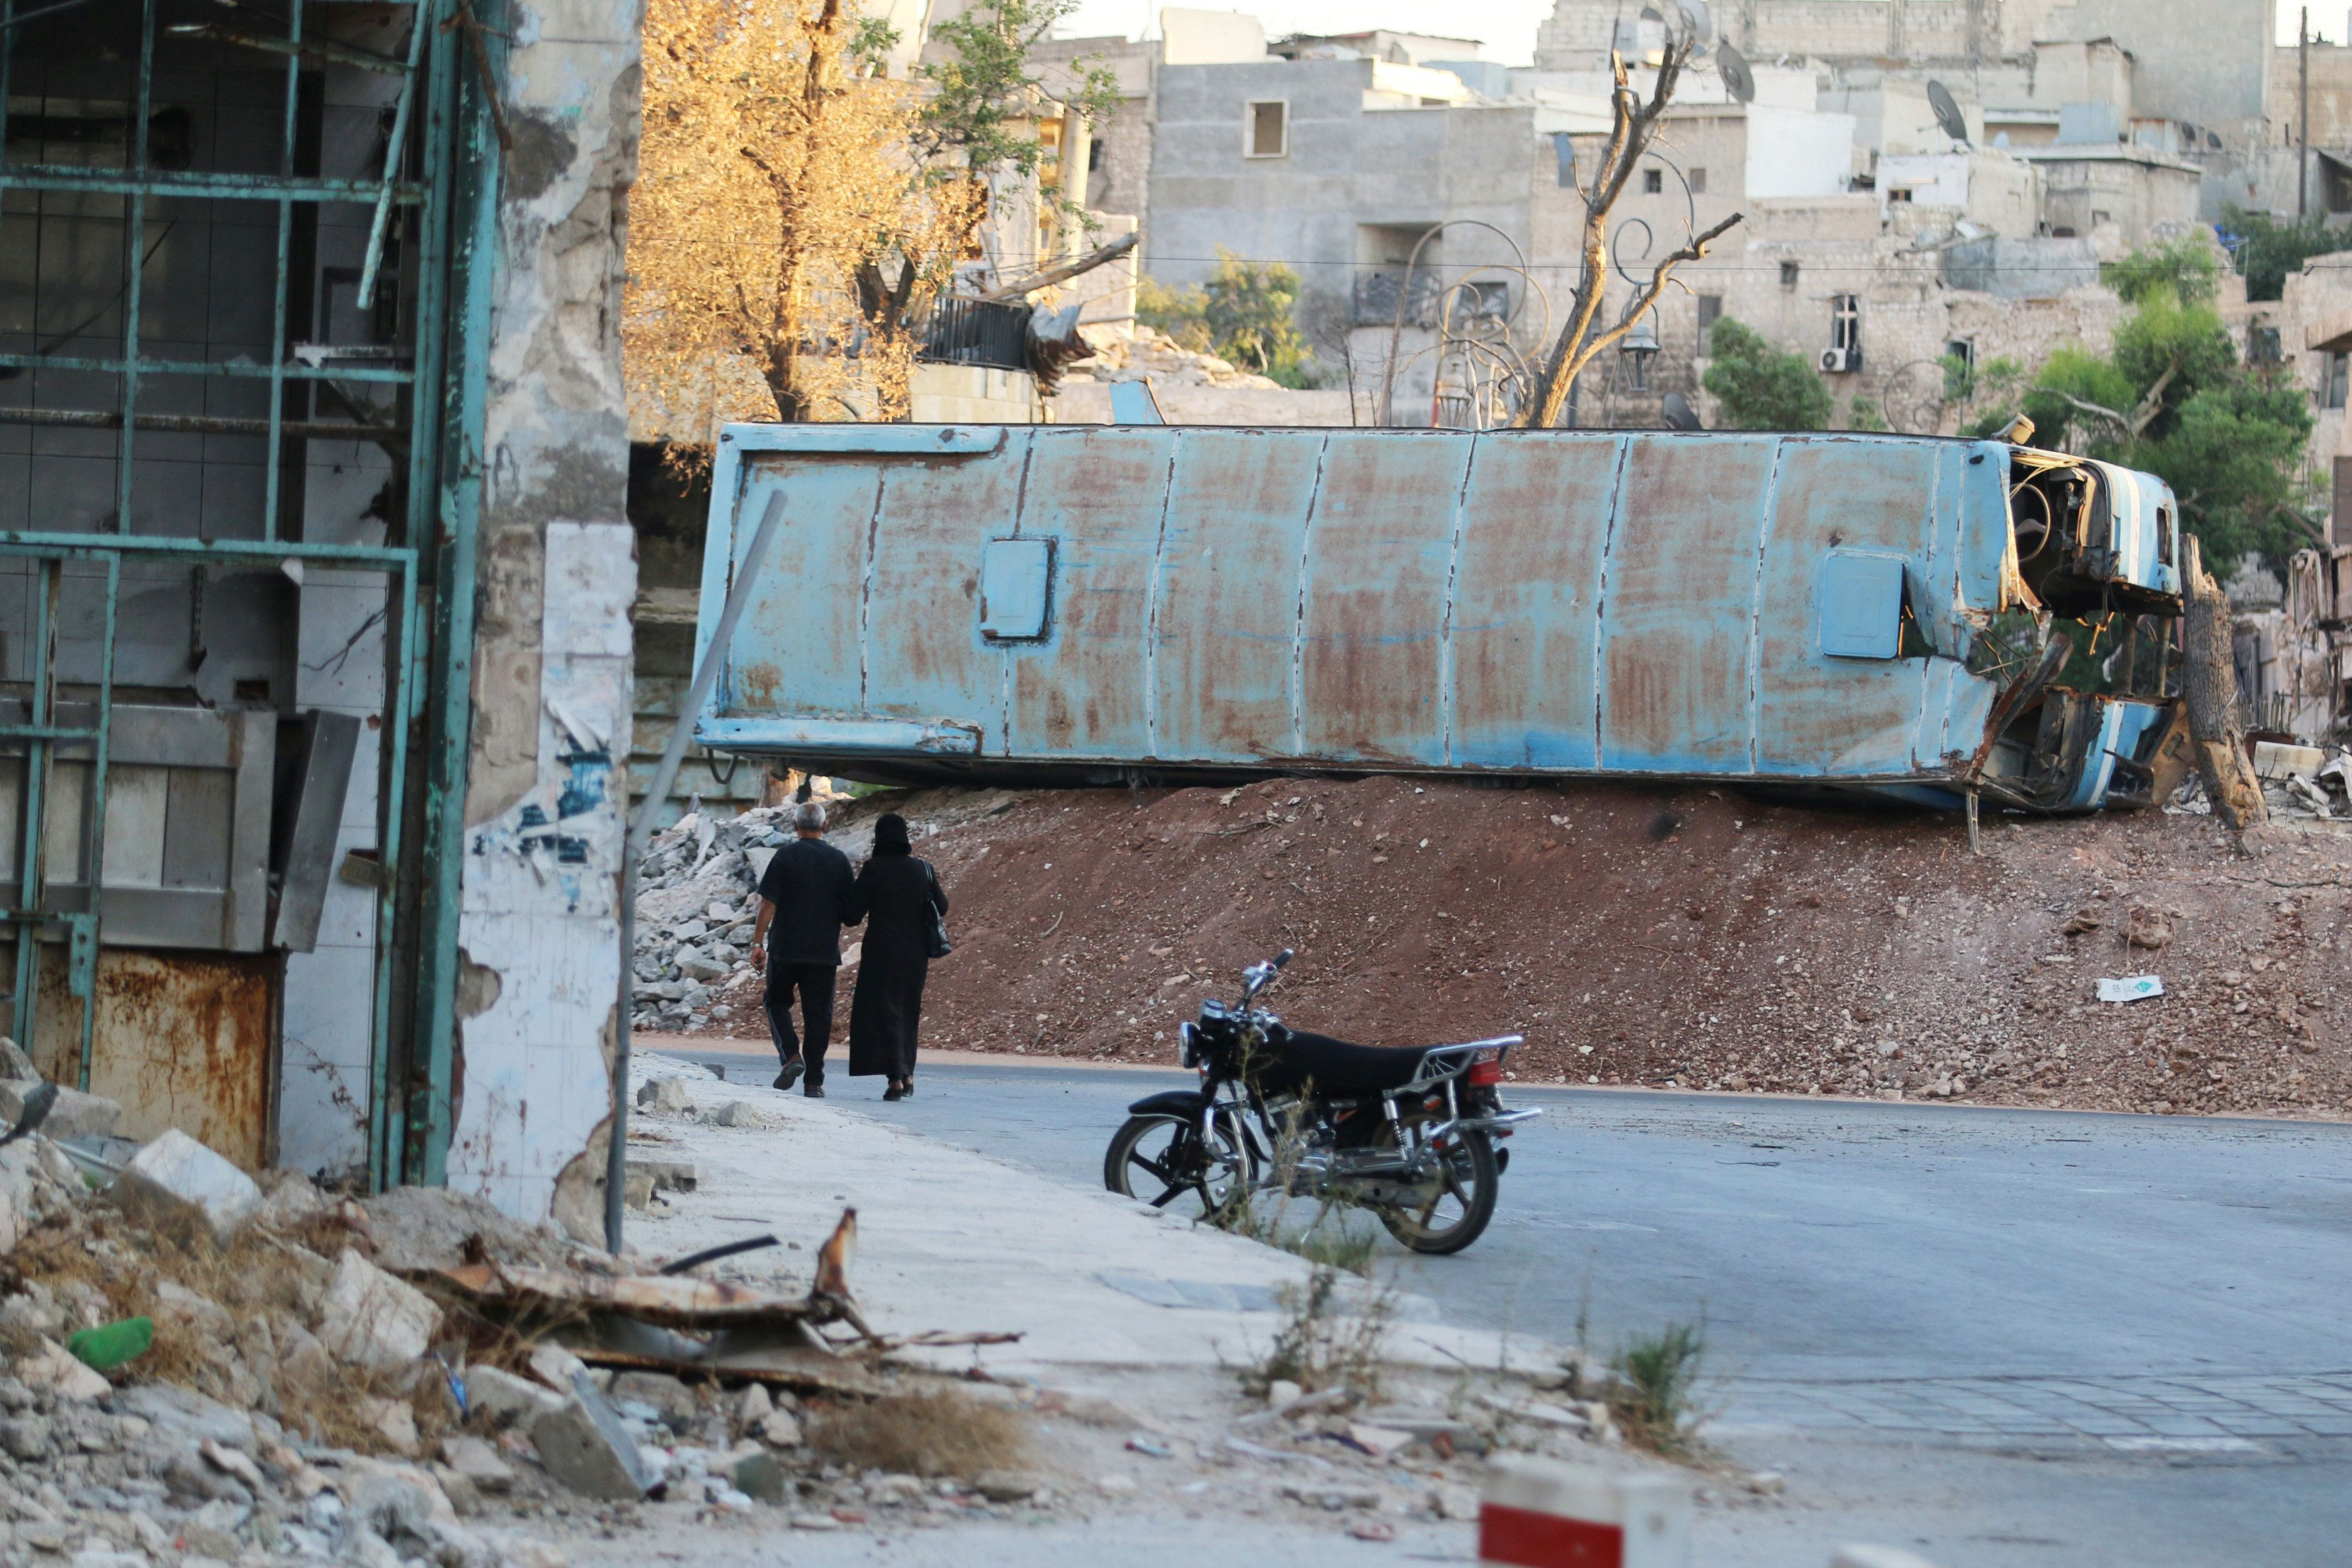 Syria Ceasefire Deal Put To The Test As Government Forces Block Aid To